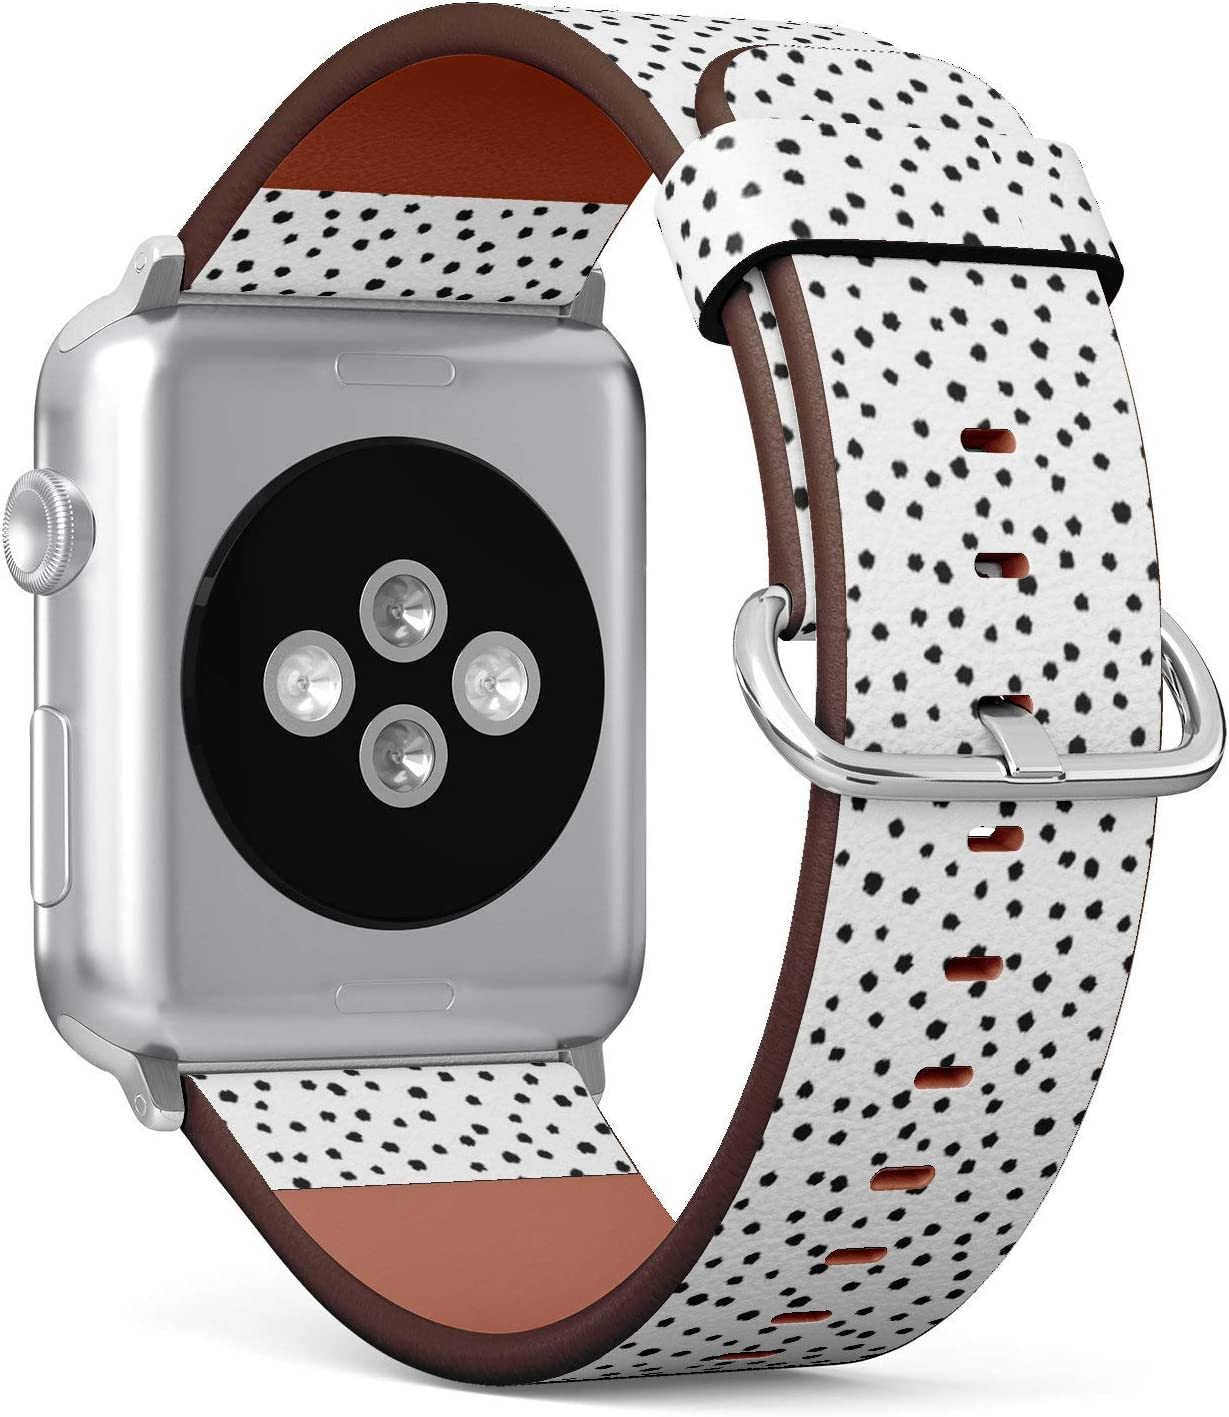 Compatible with Apple Watch 38mm & 40mm (Series 5, 4, 3, 2, 1) Leather Watch Wrist Band Strap Bracelet with Stainless Steel Clasp and Adapters (Polka Dot)